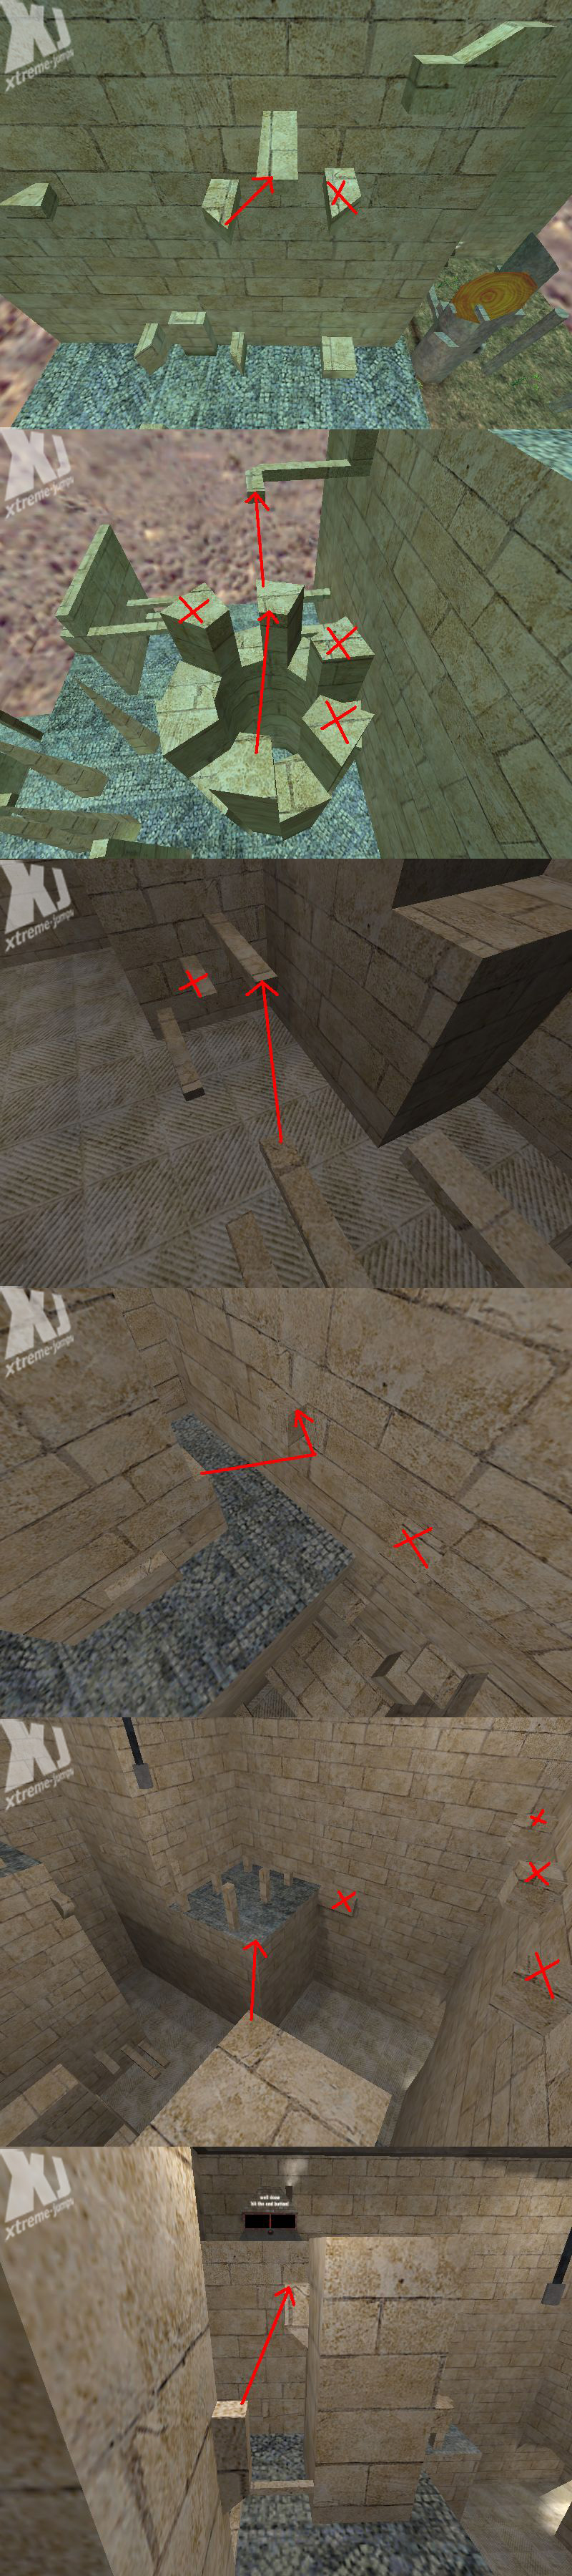 kz_ea_templeblocks shortcuts